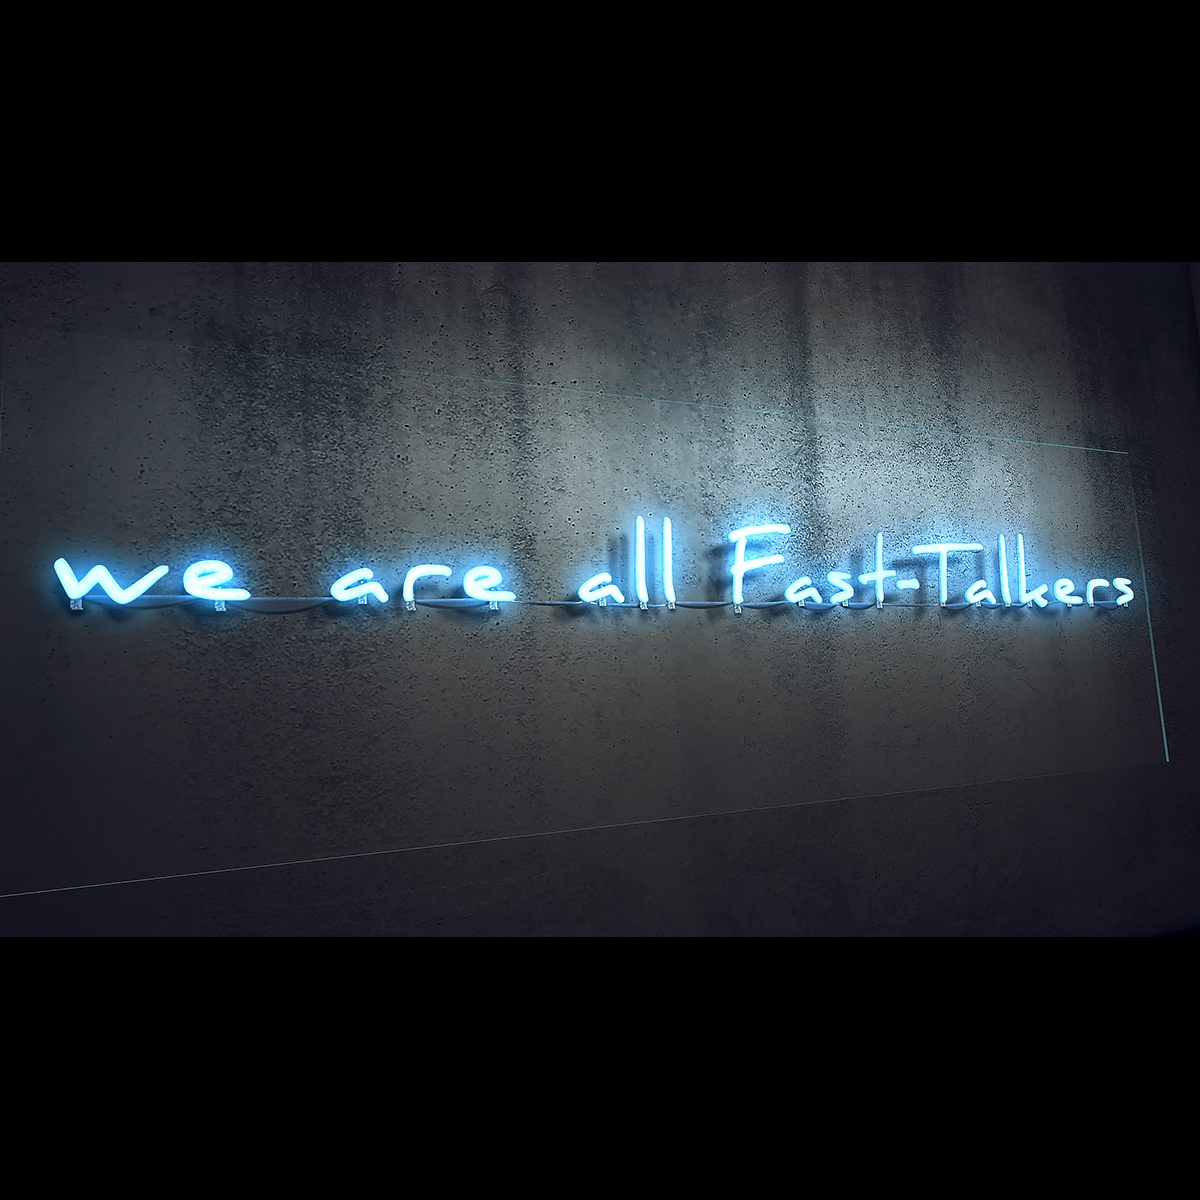 we are all FastTalkers 1200 1200 - Visuals. 2021